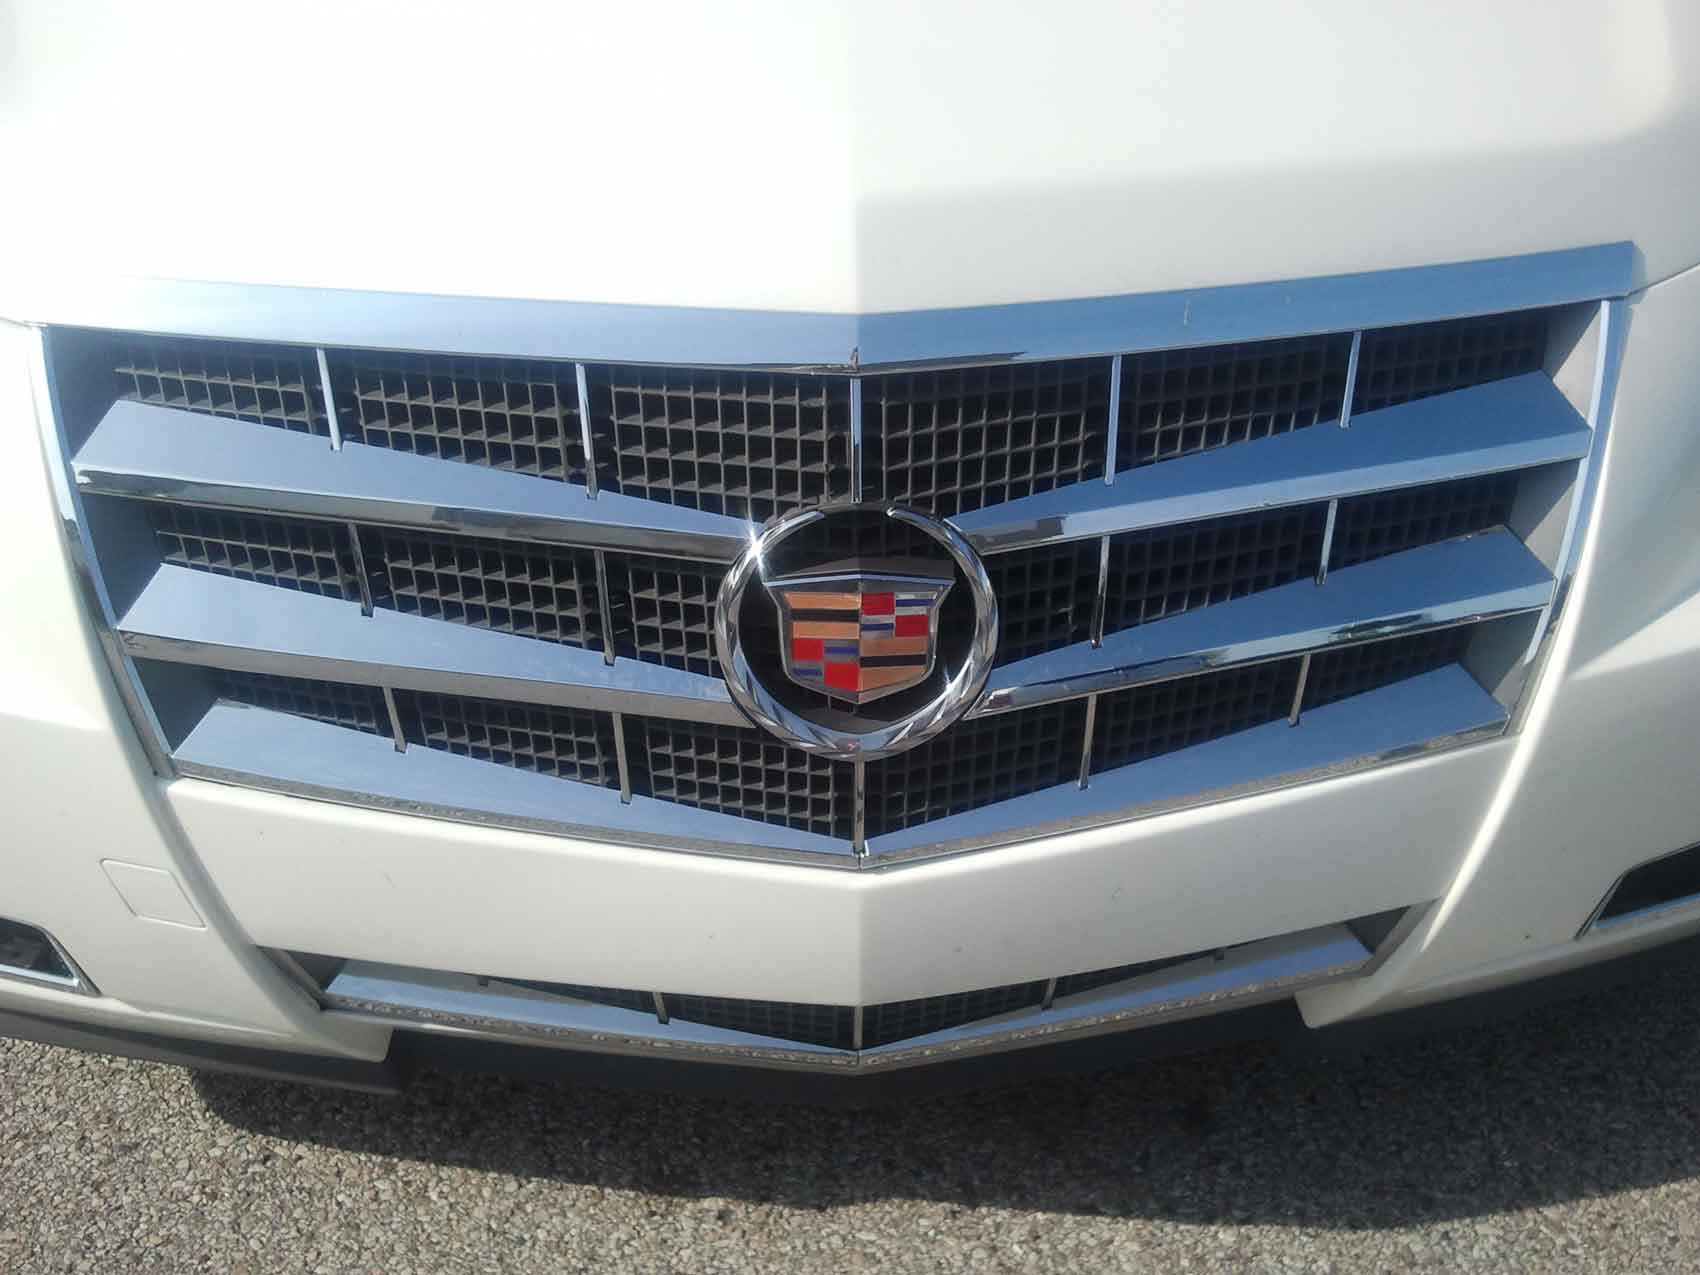 2008 Chevy Silverado For Sale >> Cadillac CTS Chrome Grille Insert Overlay Trim